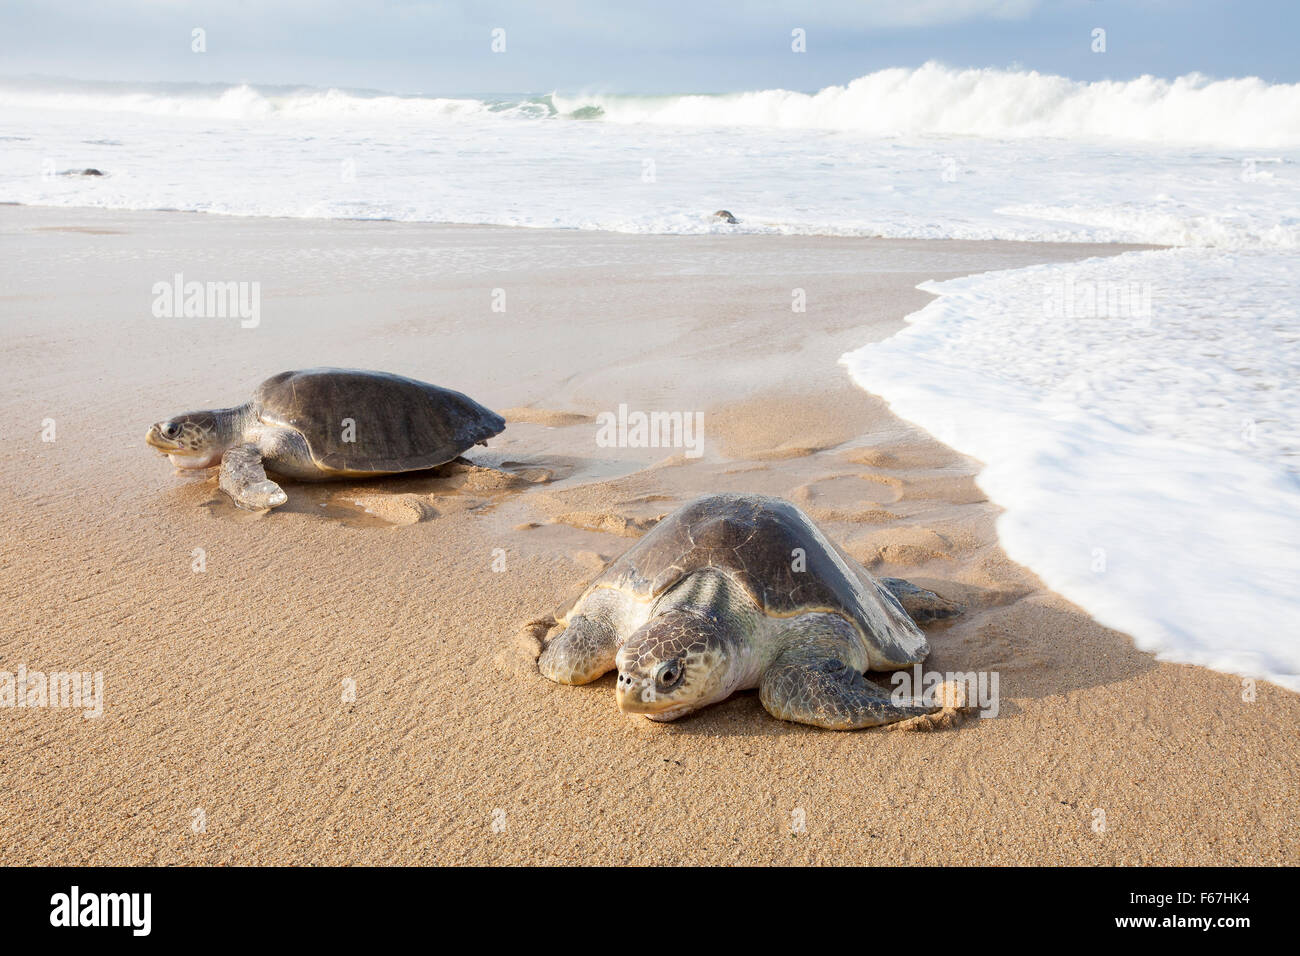 A couple of Olive Ridley sea turtles crawl up the beach to nest at Ixtapilla, Michoacan, Mexico. - Stock Image